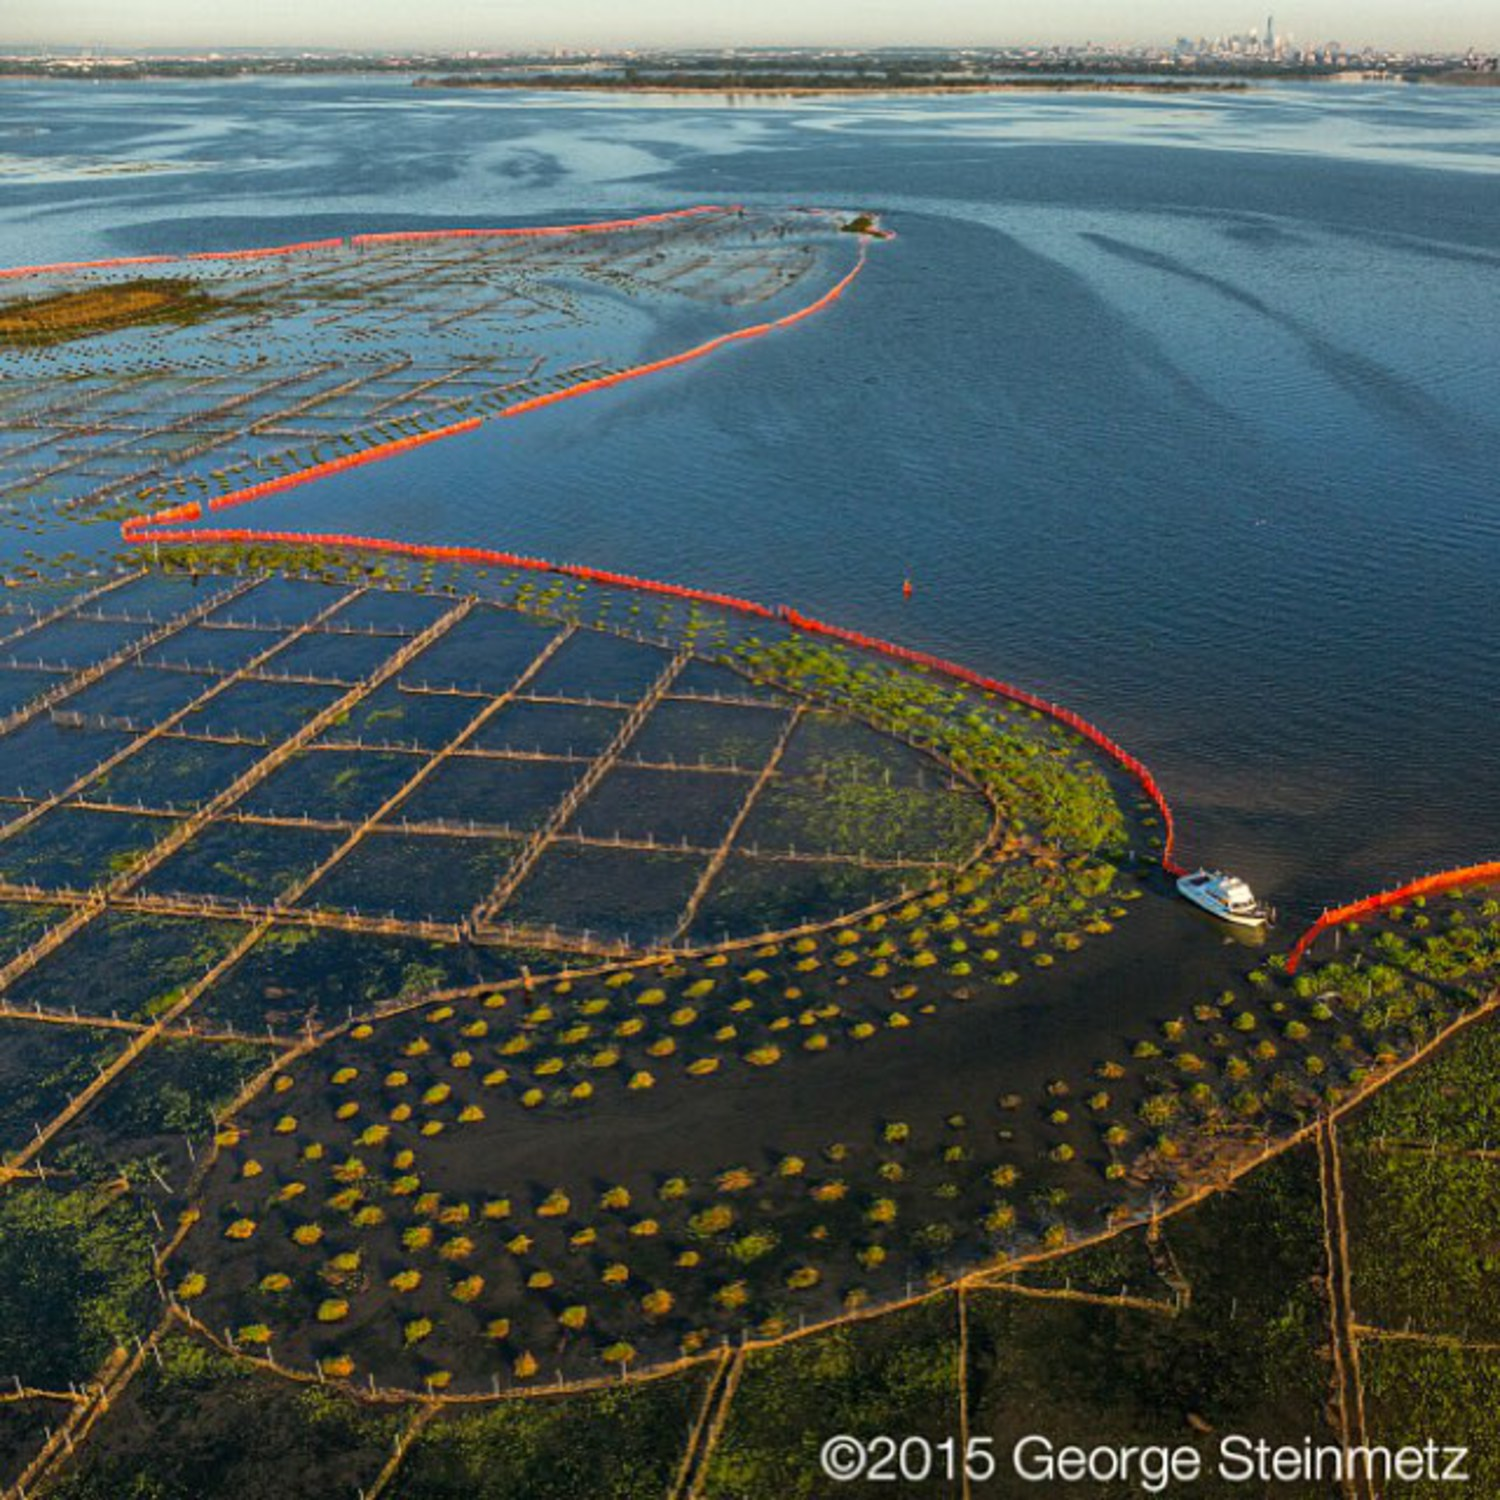 Photograph by George Steinmetz @geosteinmetz / @thephotosociety  It may look by a new work the artist Christo, but this Hurricane Sandy restoration project in Jamaica Bay was supervised by the Army Corps of Engineers. The orange barrier diminishes wave erosion to help marsh plants get established and serve as a haven for fish and wildlife. Hard to believe this is #NewYorkCity, but if you look carefully #OneWorldTrade is visible in upper right.